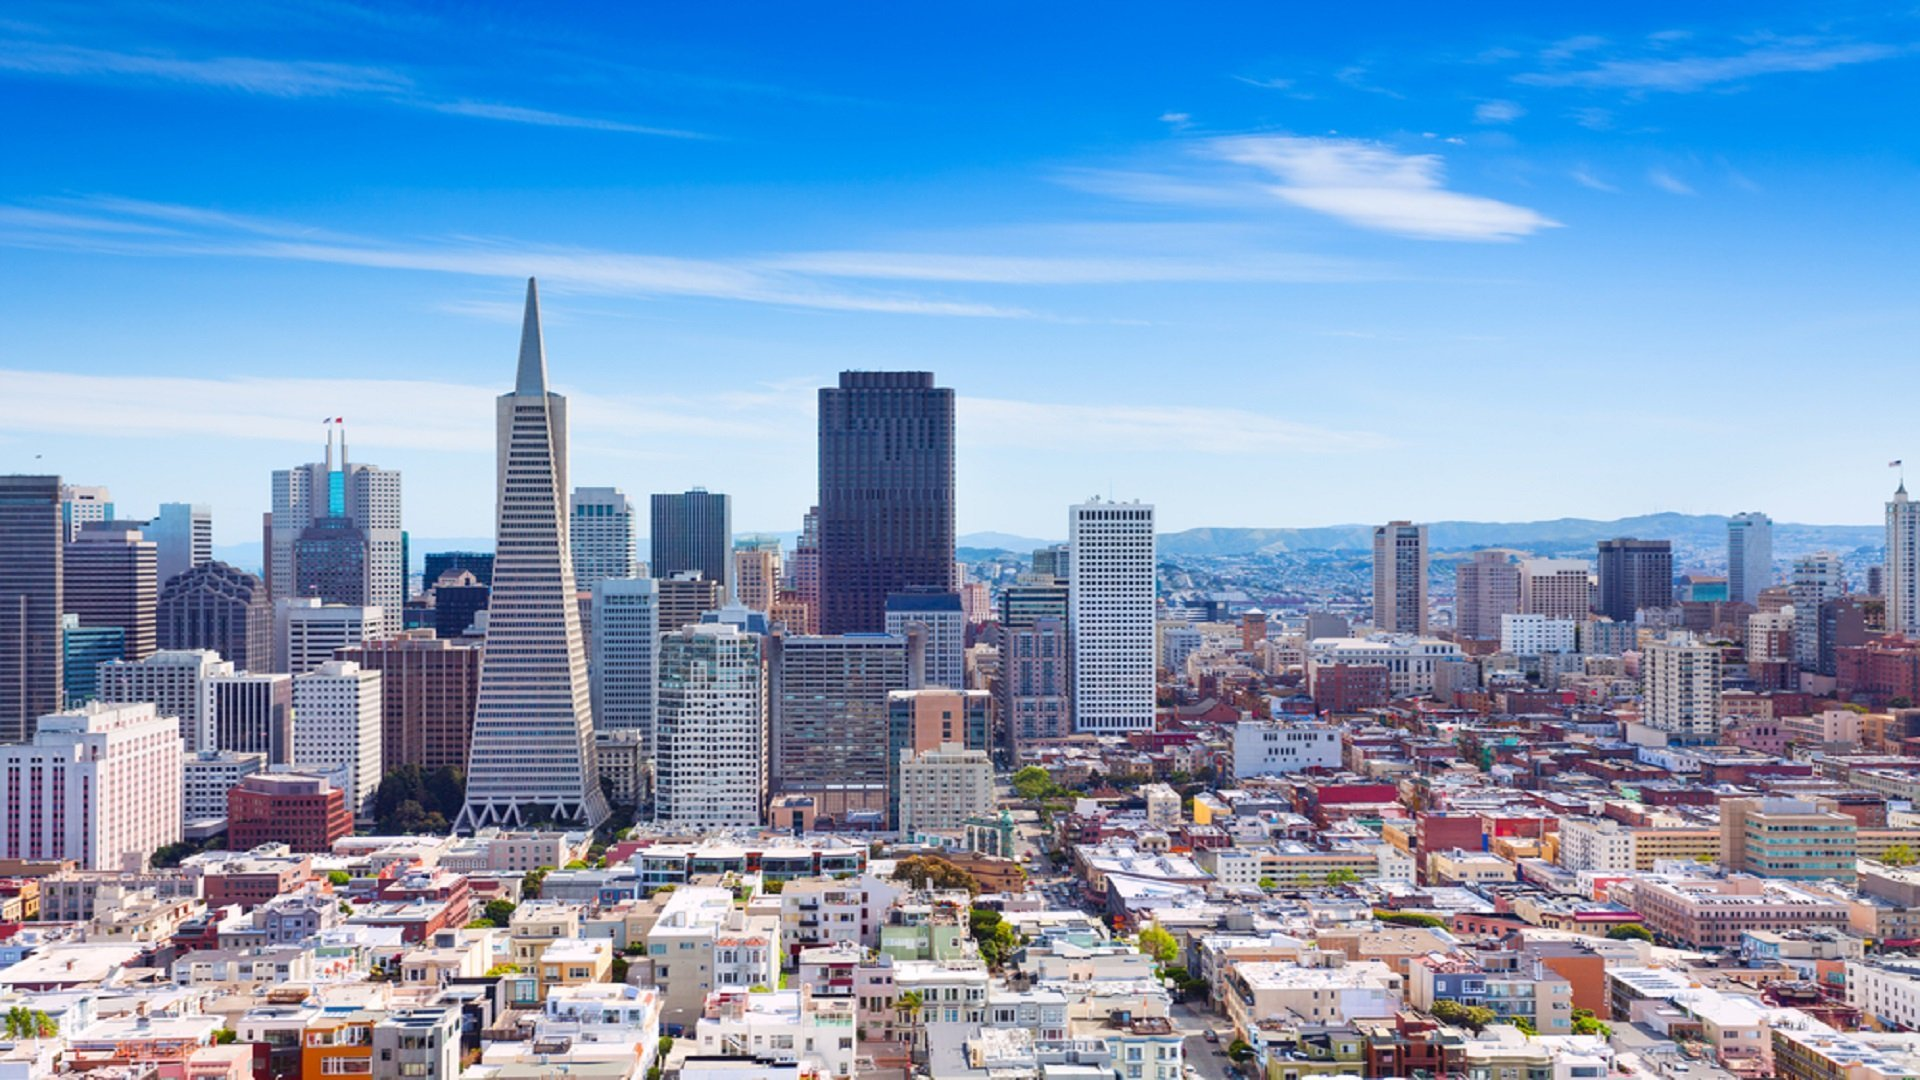 Vacation Travel Guide To San Francisco Best Places To Visit In San Francisco Zen Tripstar travel trip usa north america Dalas